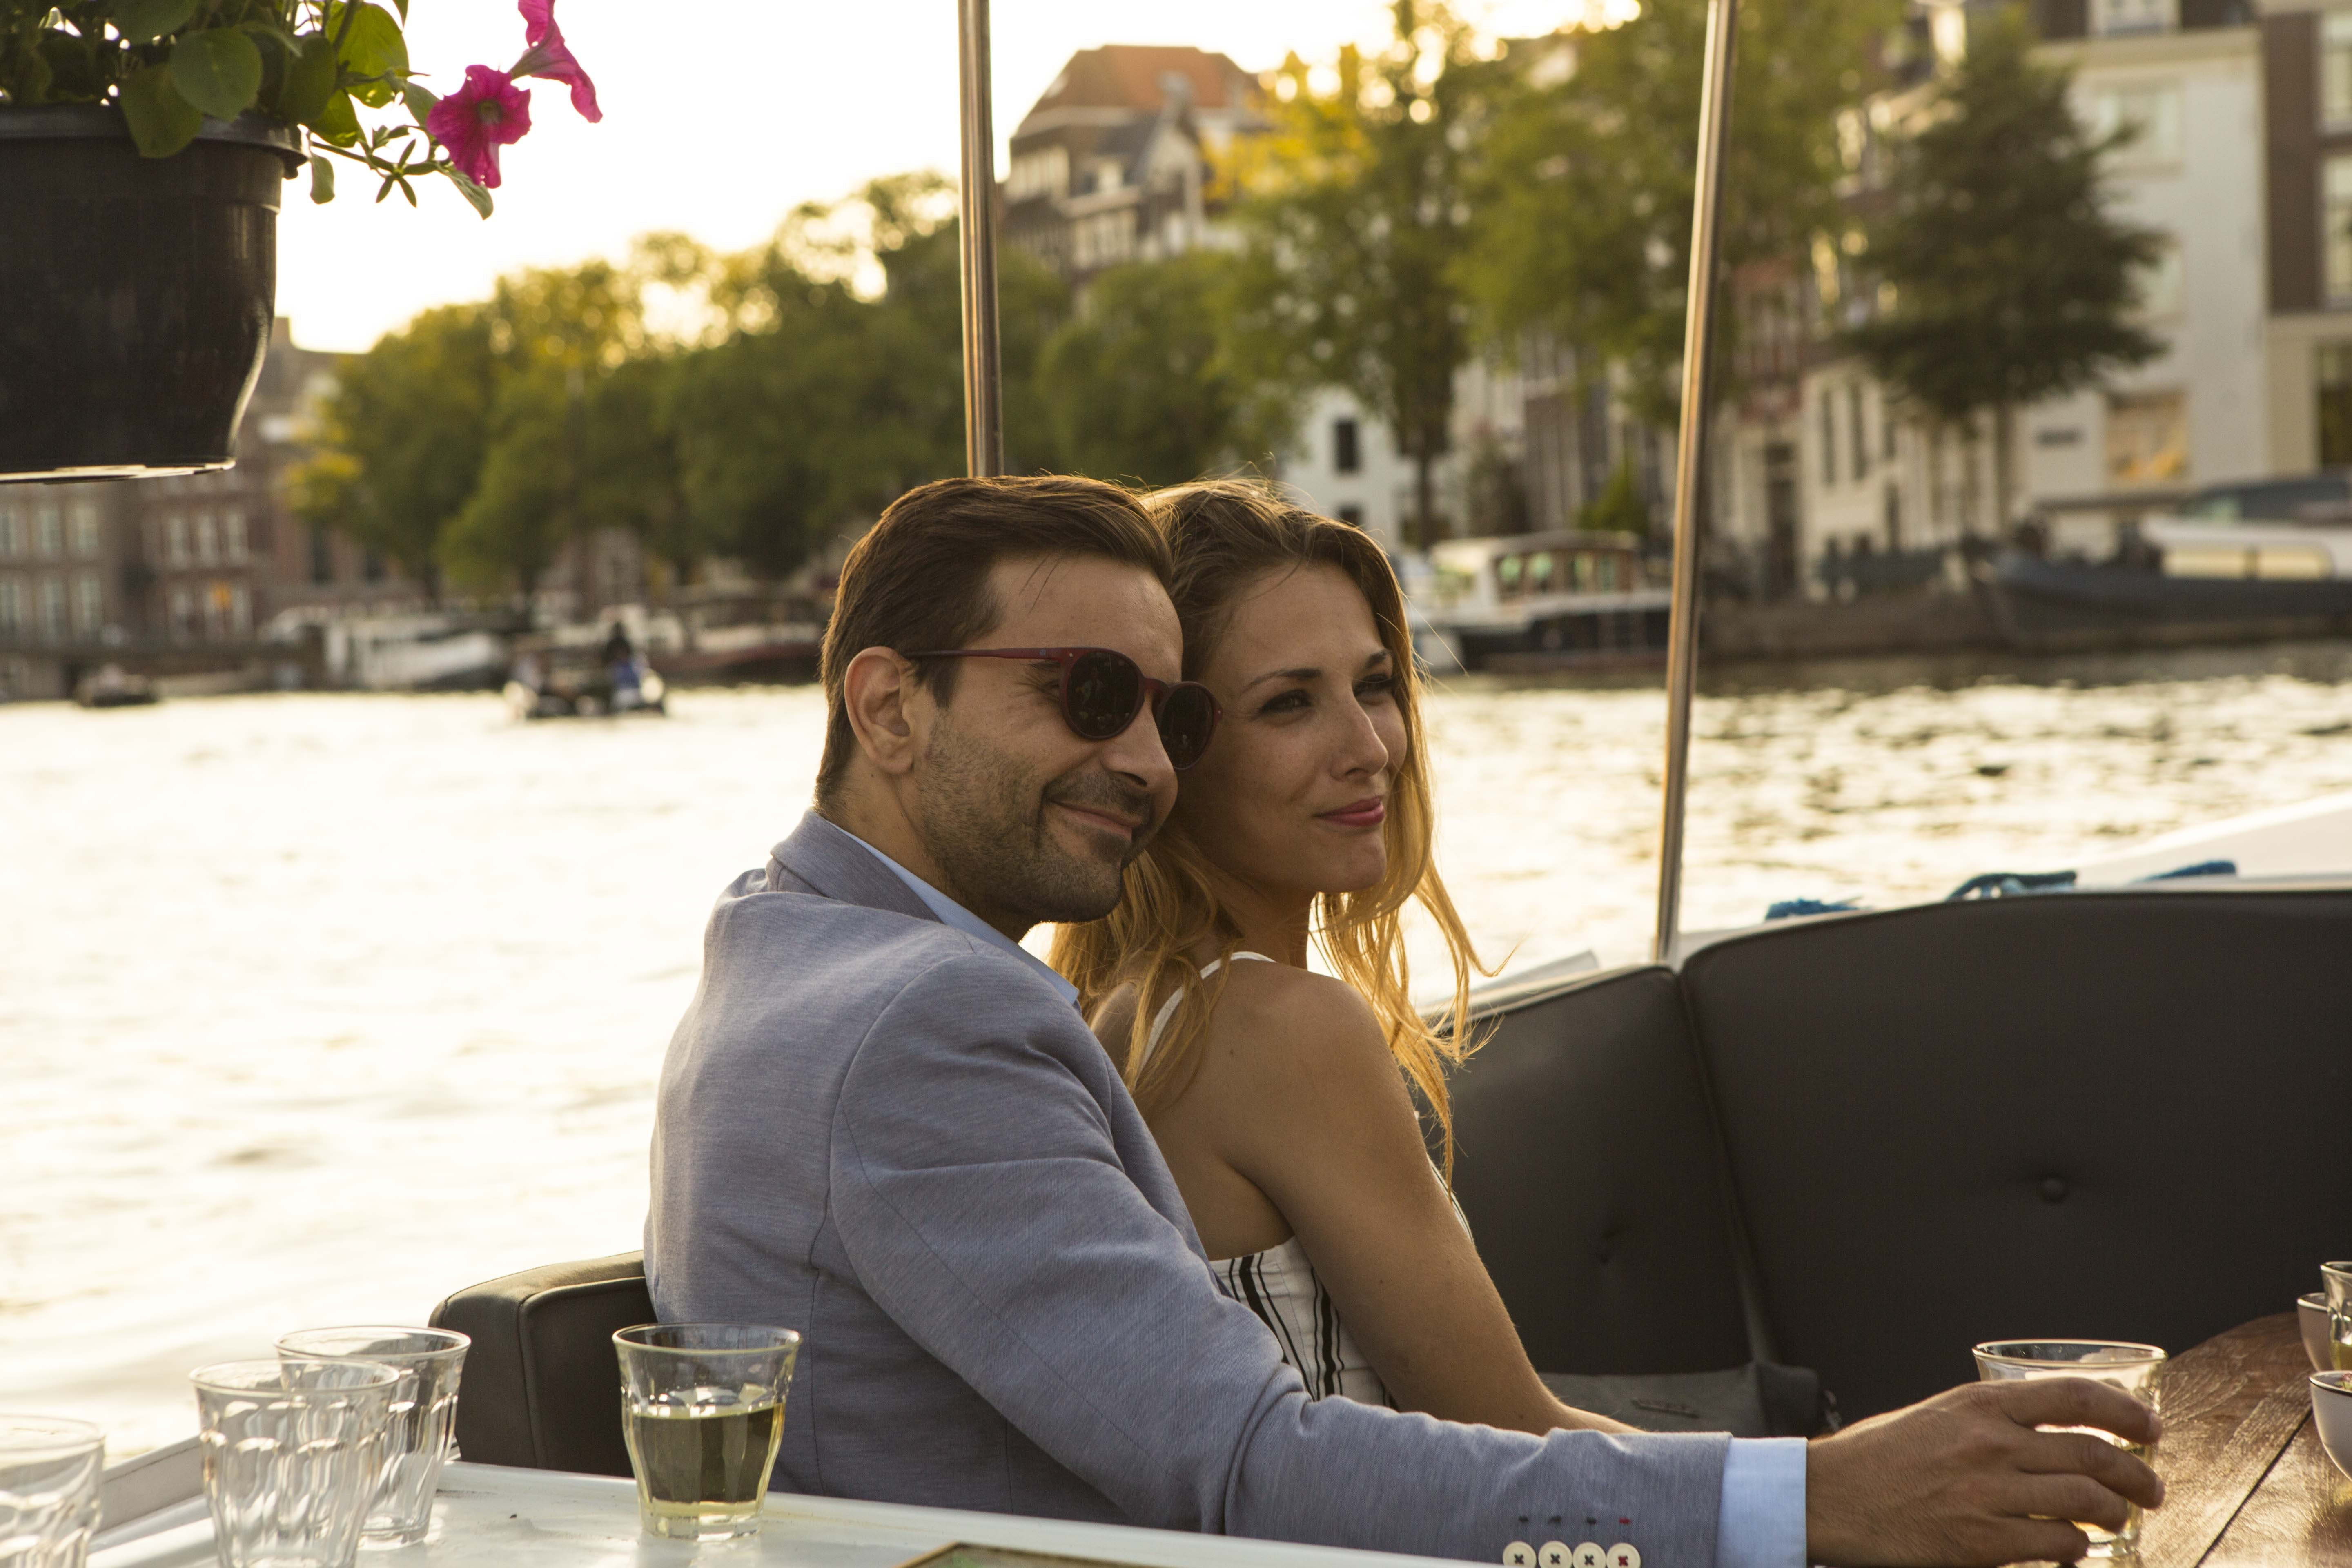 On of the most romantic things to do in Amsterdam is to go together on a boatcruise.